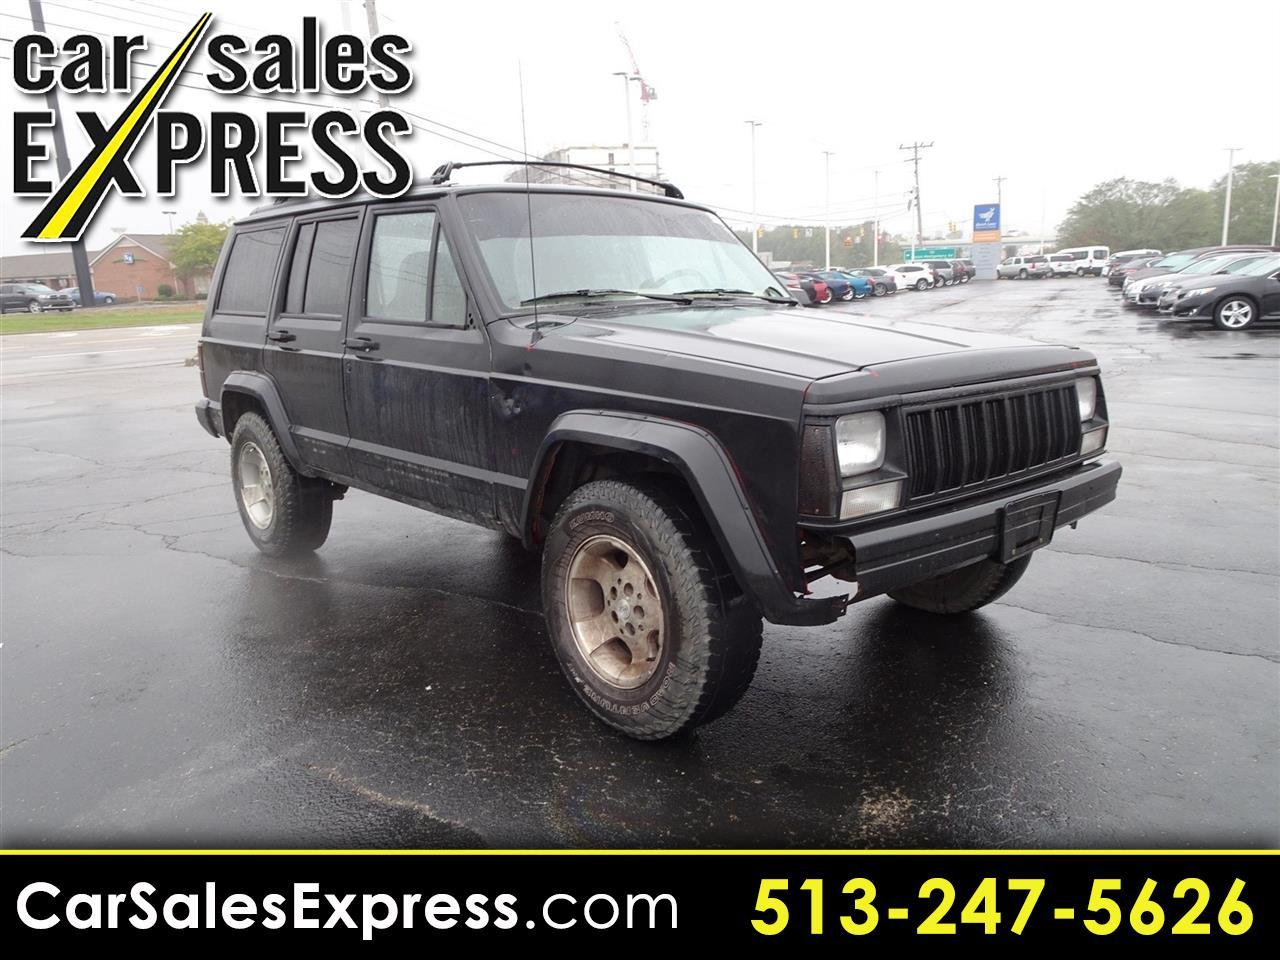 Car Sales Express >> 1996 Jeep Cherokee 995 For Sale 600